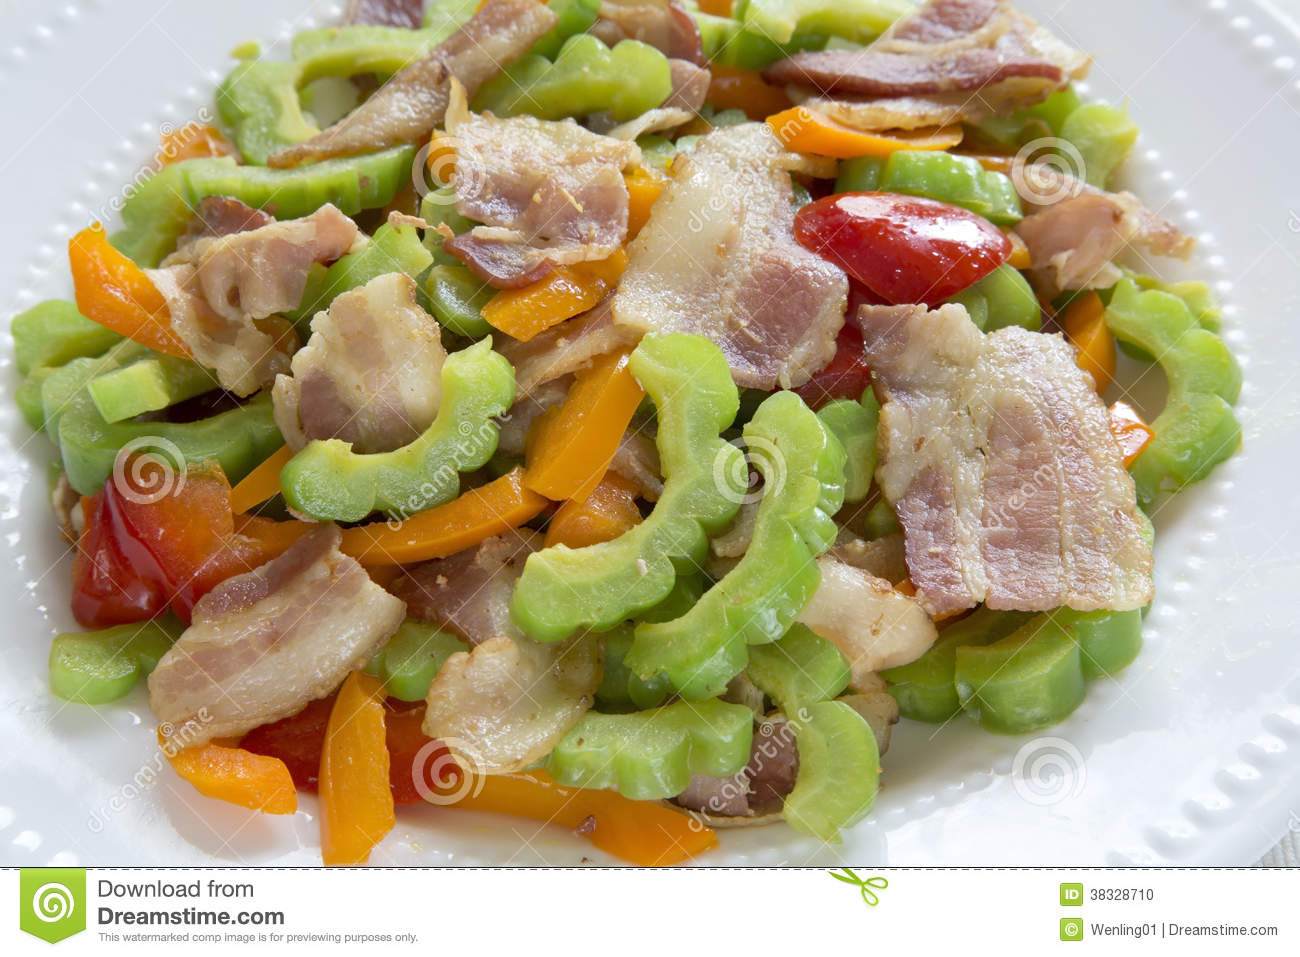 Delicious stir-fry bacon and bitter melon